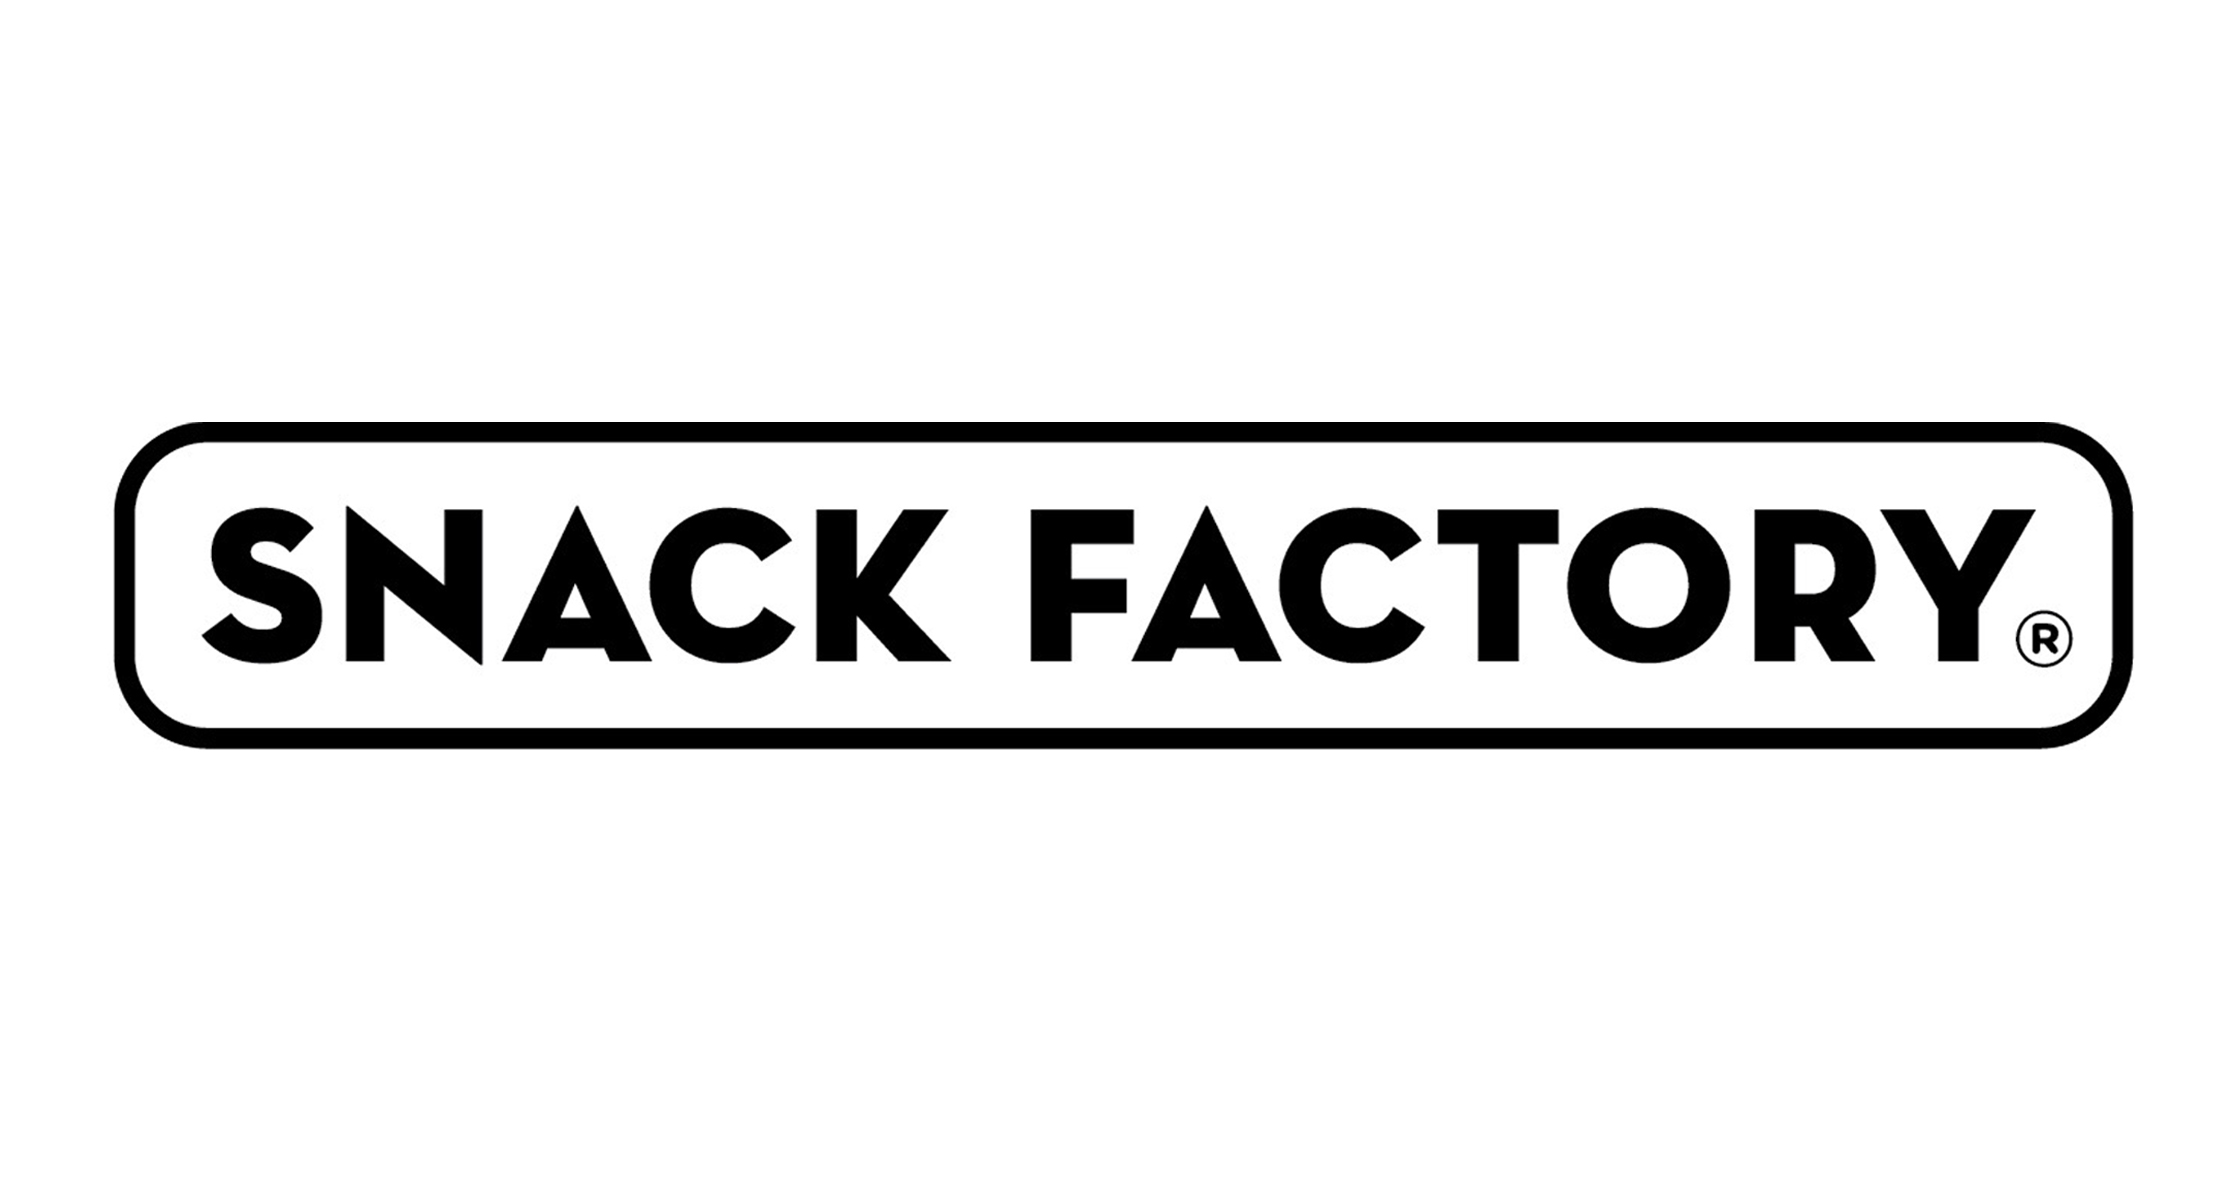 Snack Factory